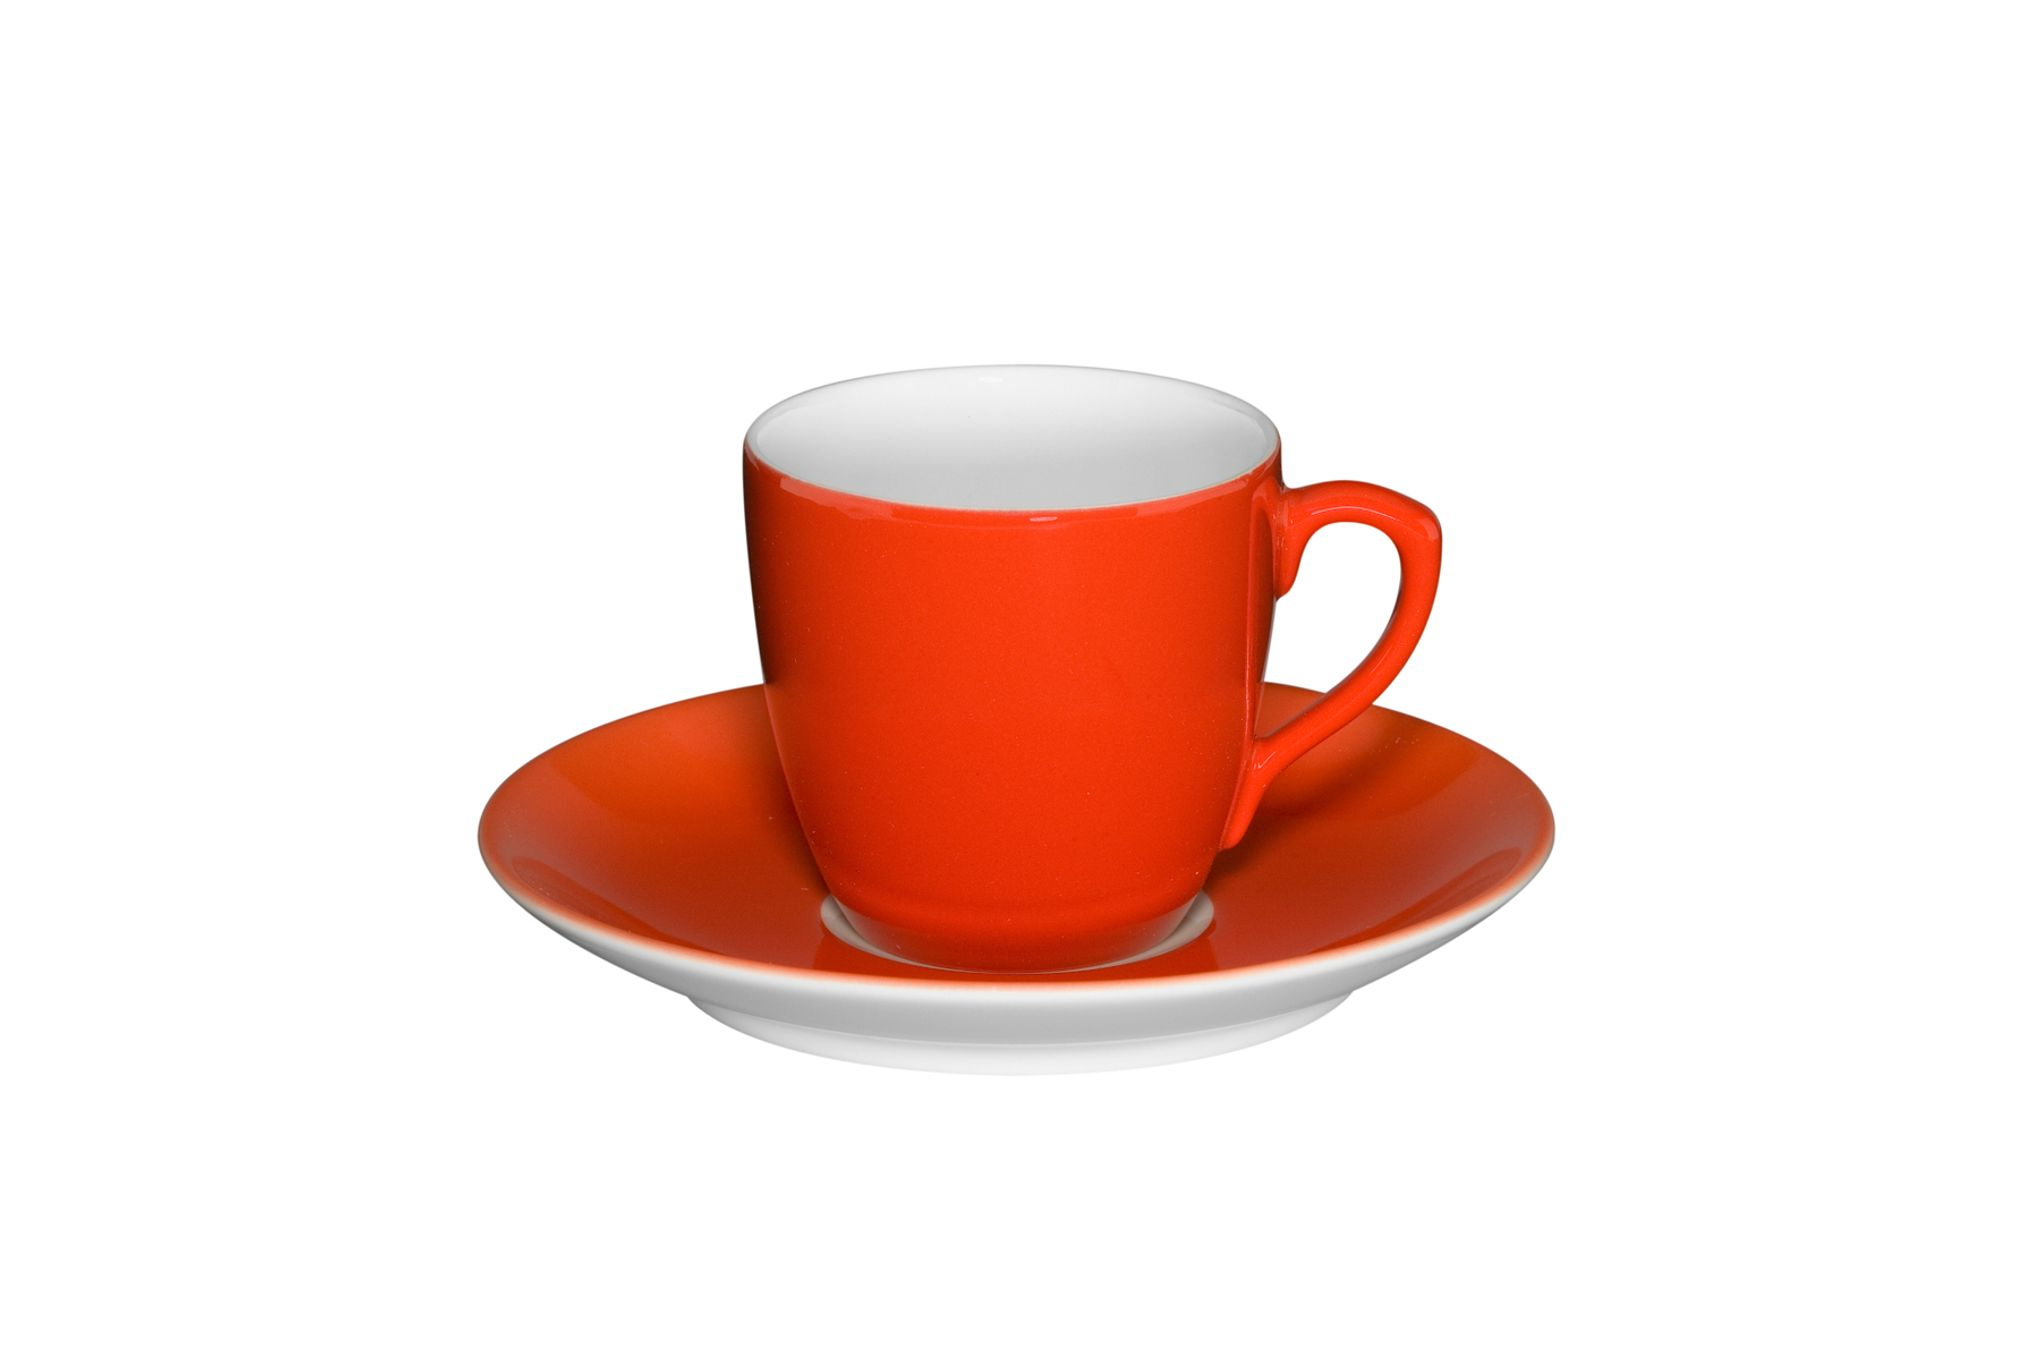 Orange Cooper & Co. Branded Cup with Saucer